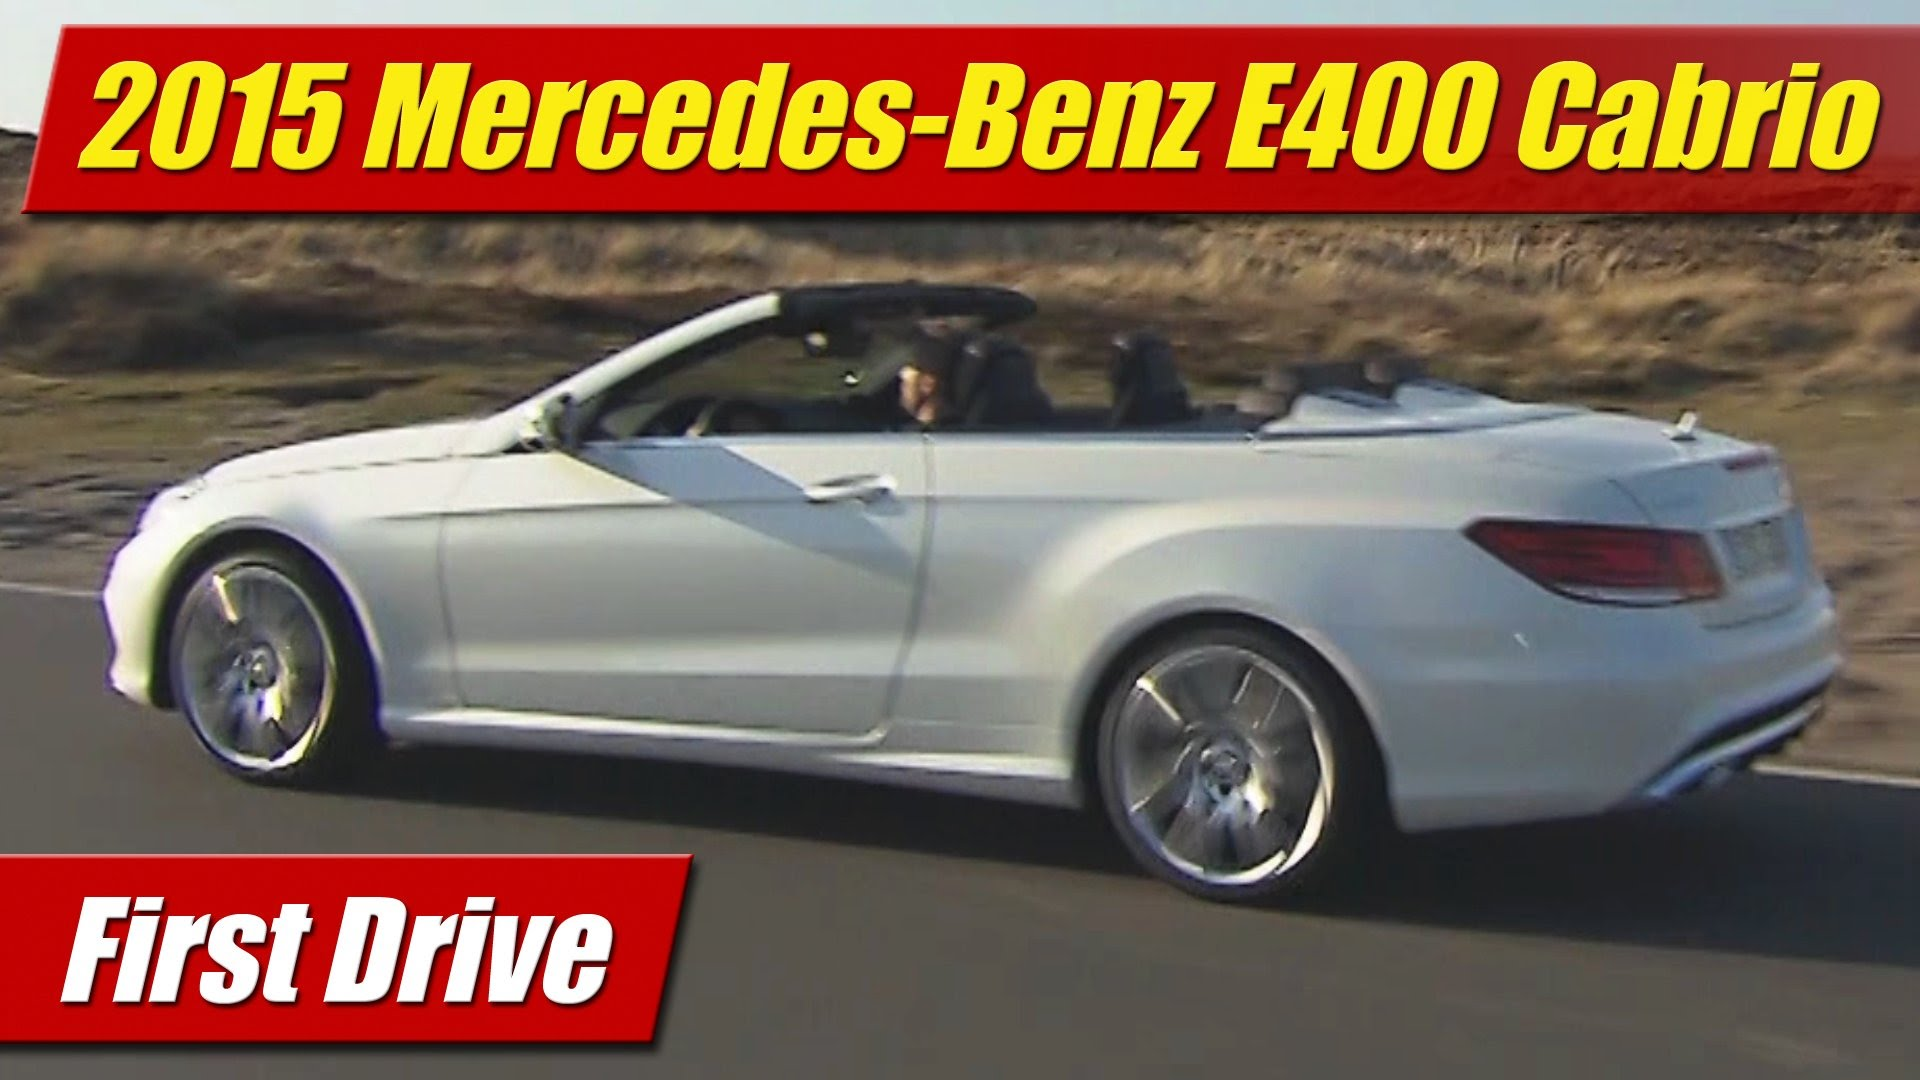 First drive 2015 mercedes benz e400 cabriolet testdriven tv for 2015 mercedes benz e400 hybrid